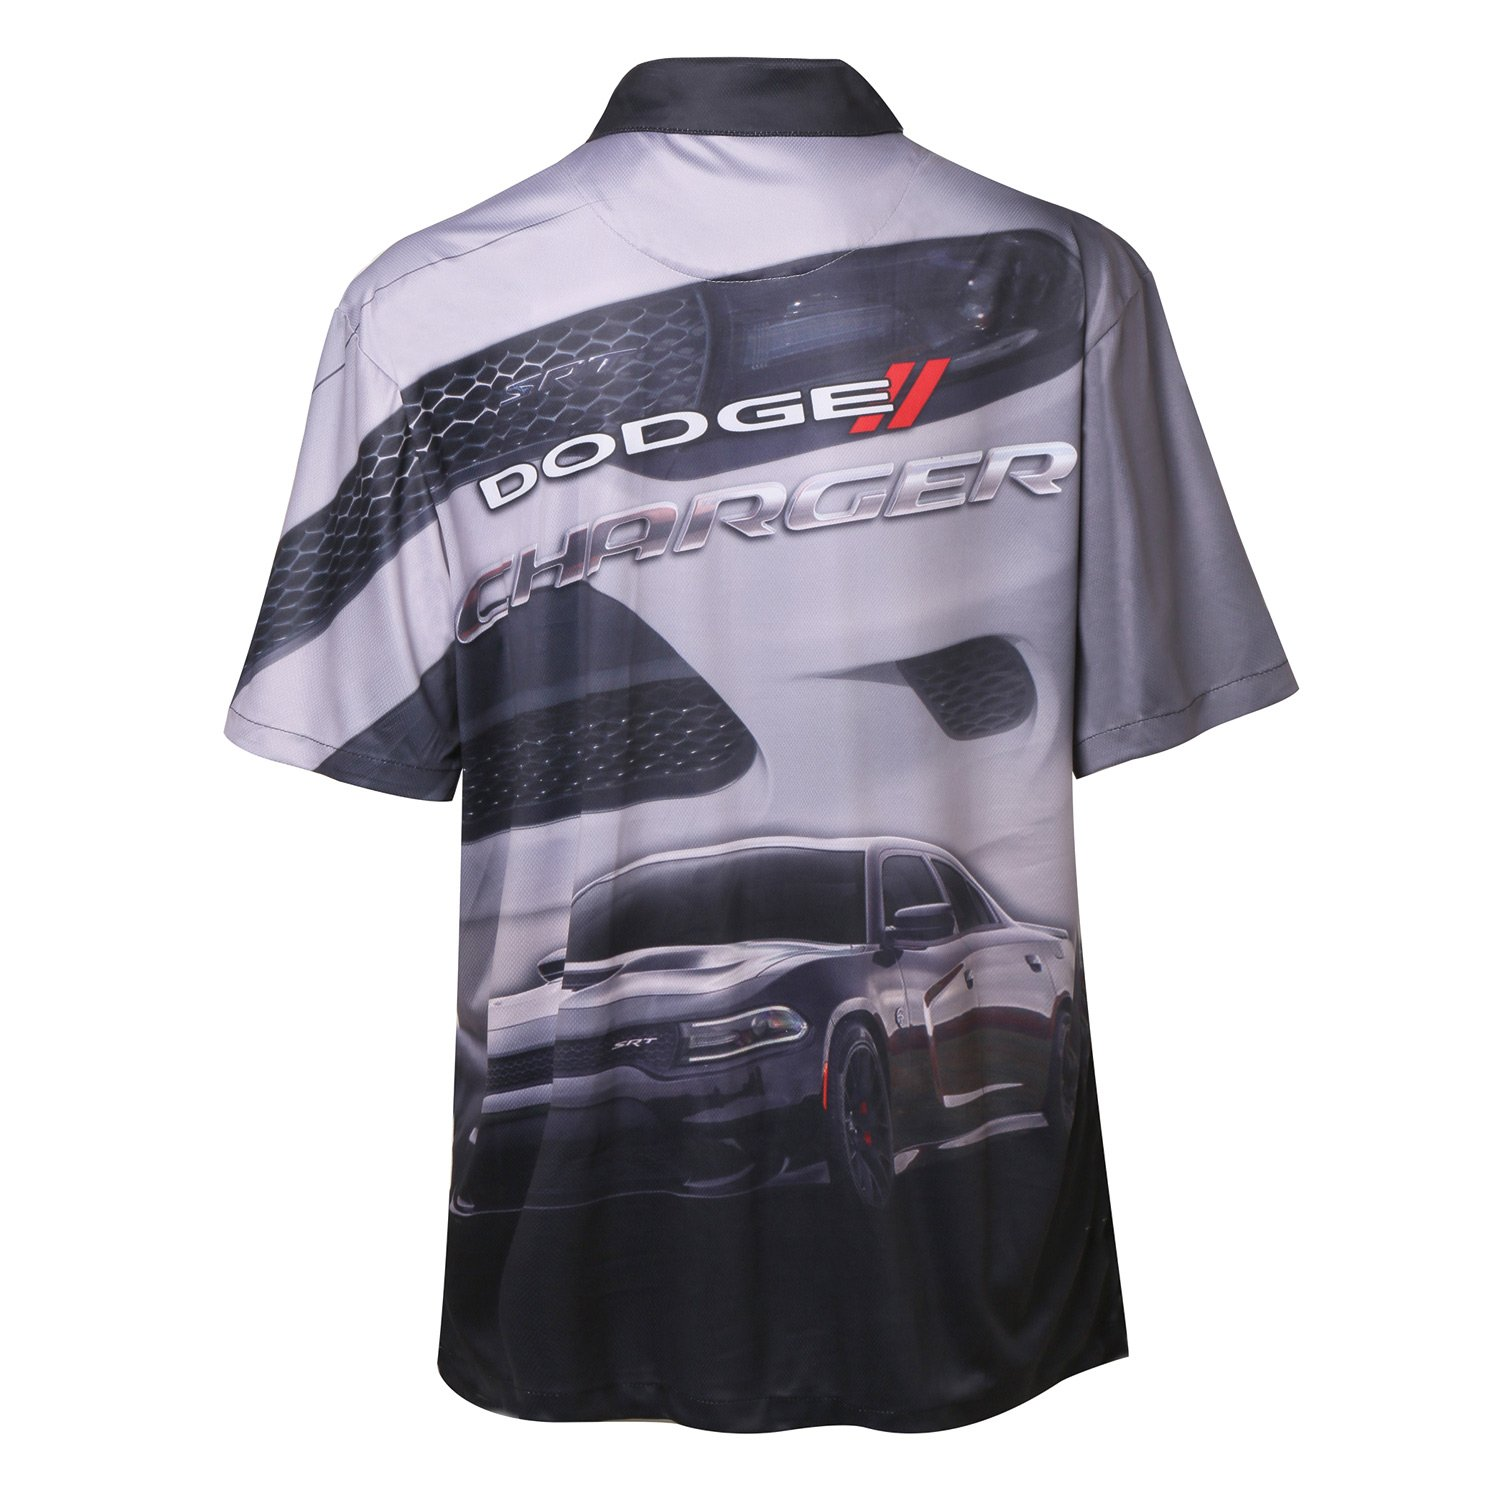 Button up Collared Short Sleeve Dry-Wicking Camp//Club Shirt with Logo Grey /& Black David Carey Dodge Charger Pit Shirt